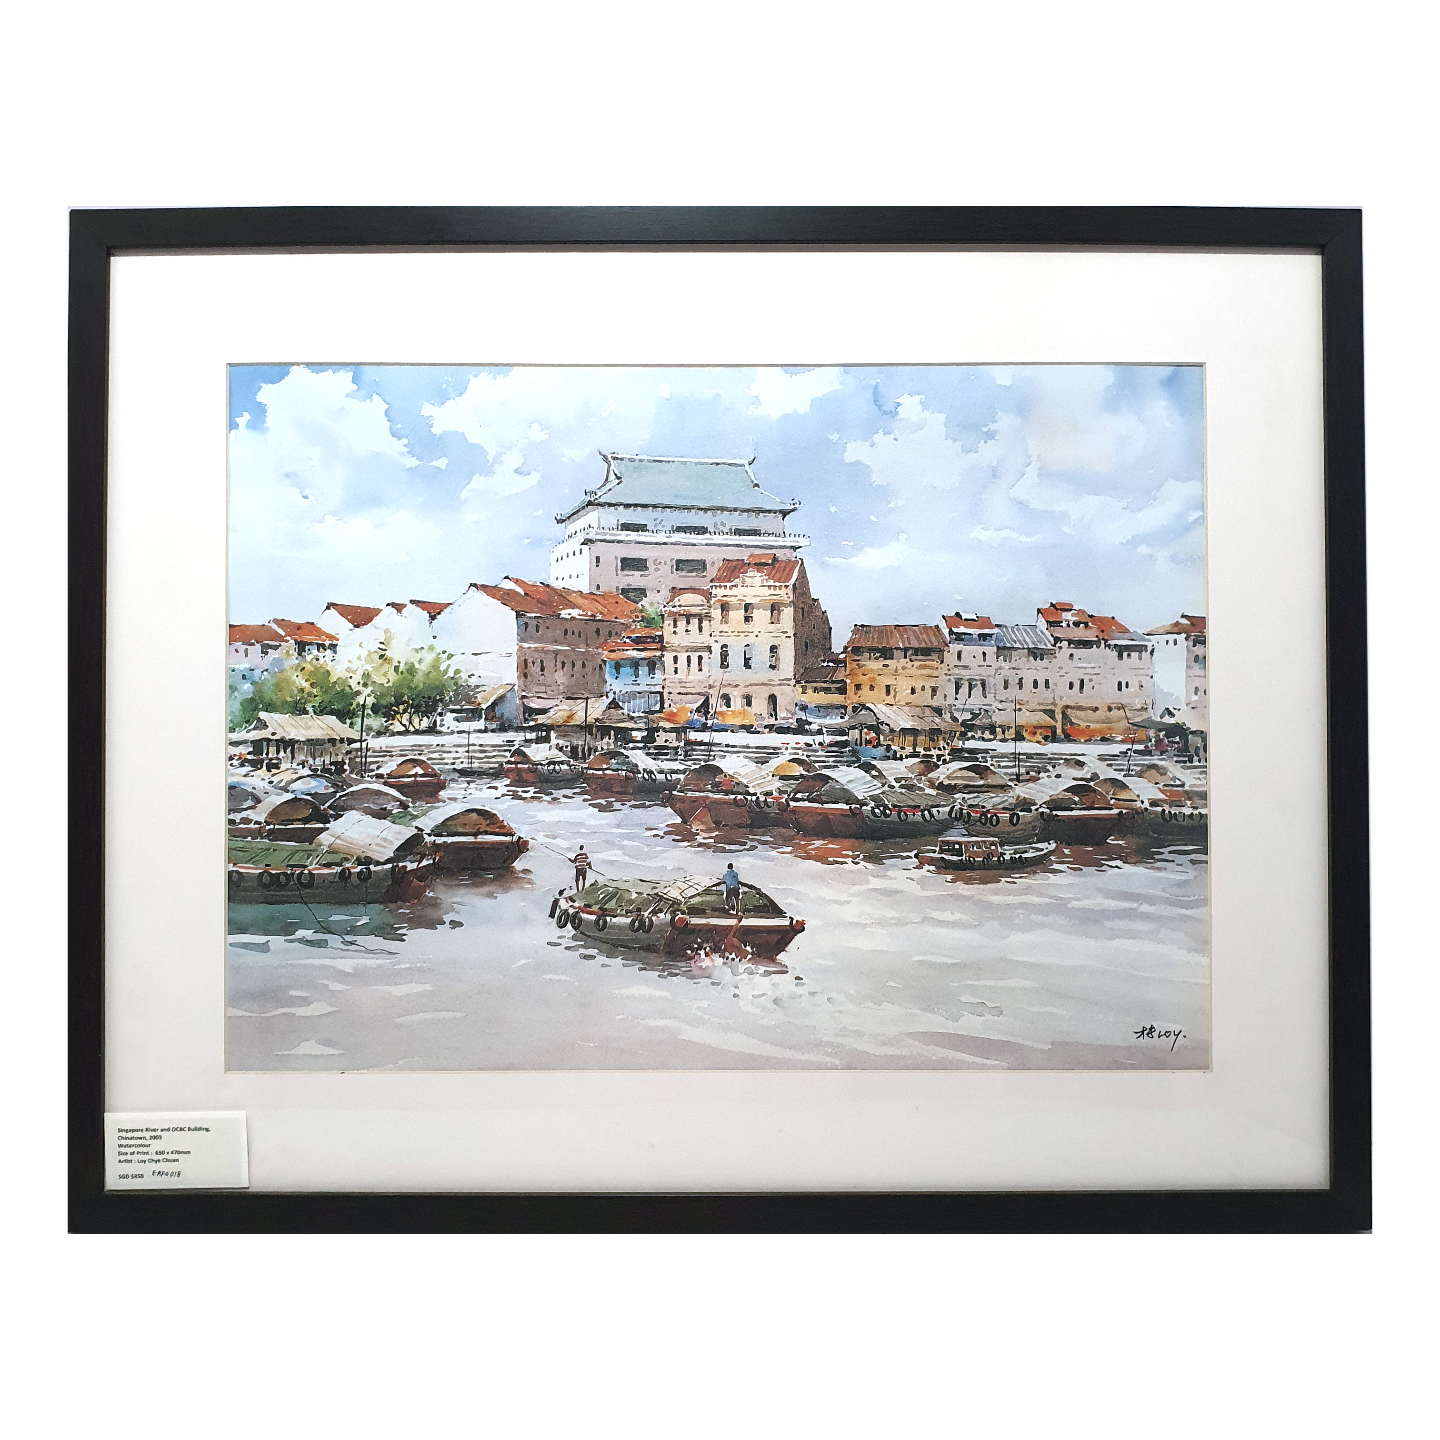 Heritage Water Colour Painting  Singapore River & OCBC Building, Chinatown by Loy Chye Chuan